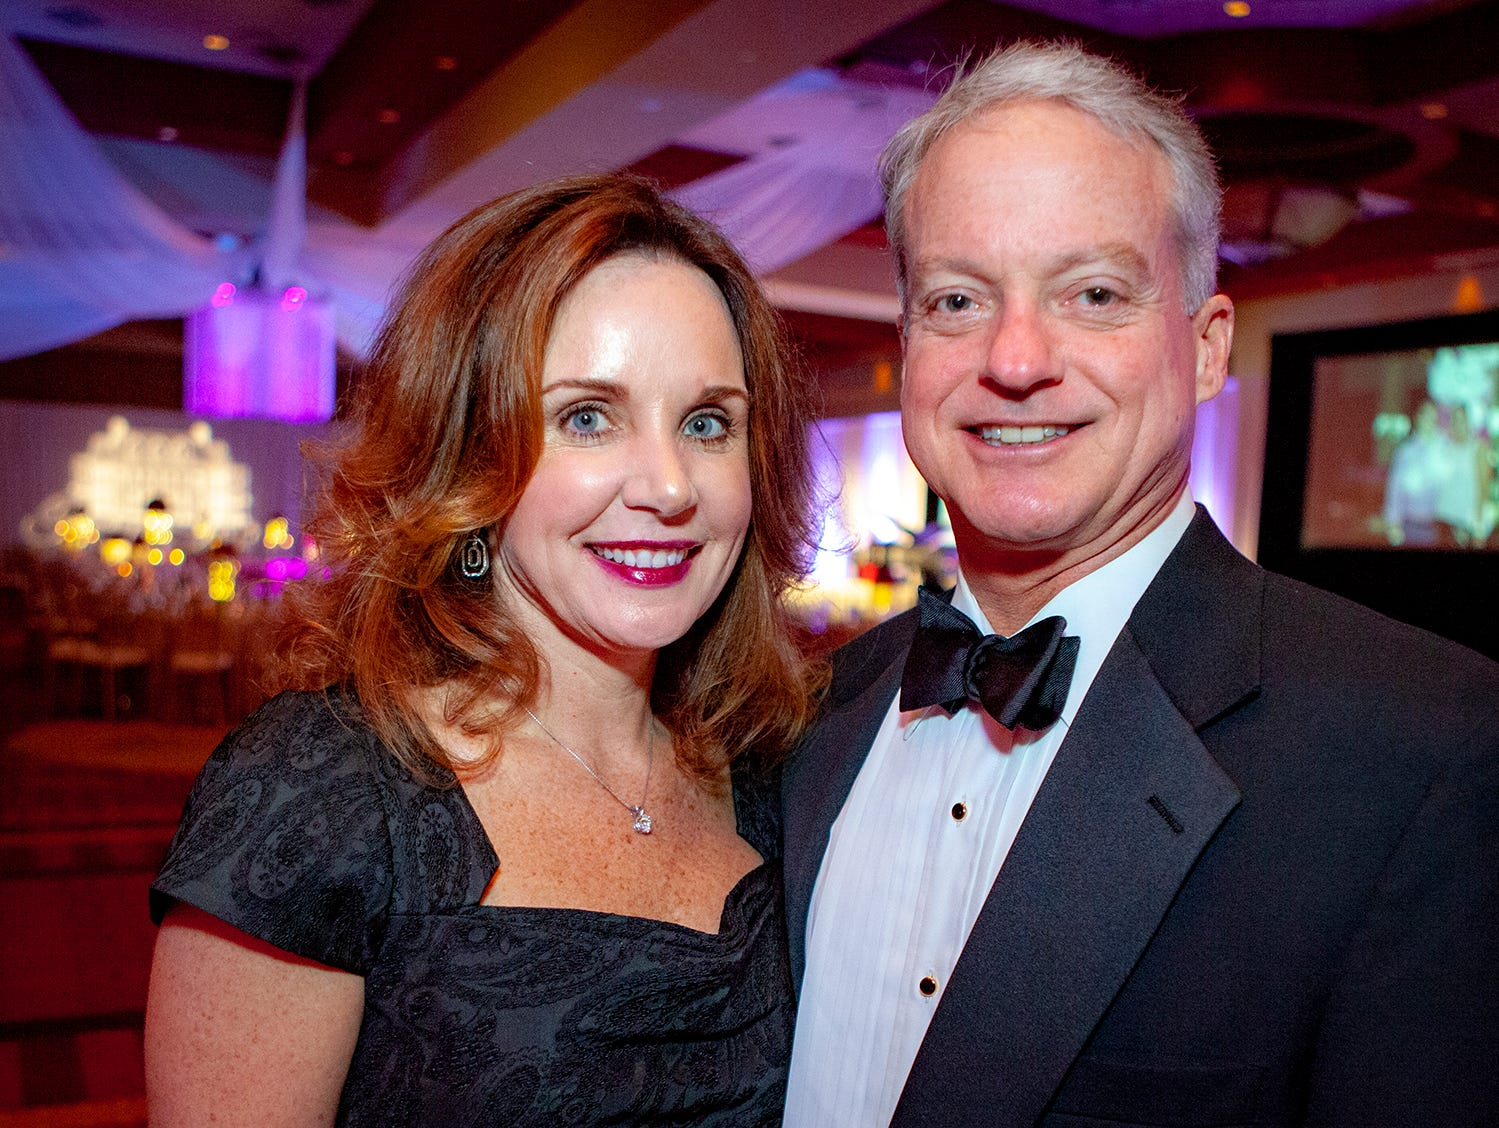 Stacey and Laws McCullough at the 2019 Saint Thomas Rutherford Foundation Gala on Saturday, Jan. 19, 2019 at Embassy Suites Murfreesboro.